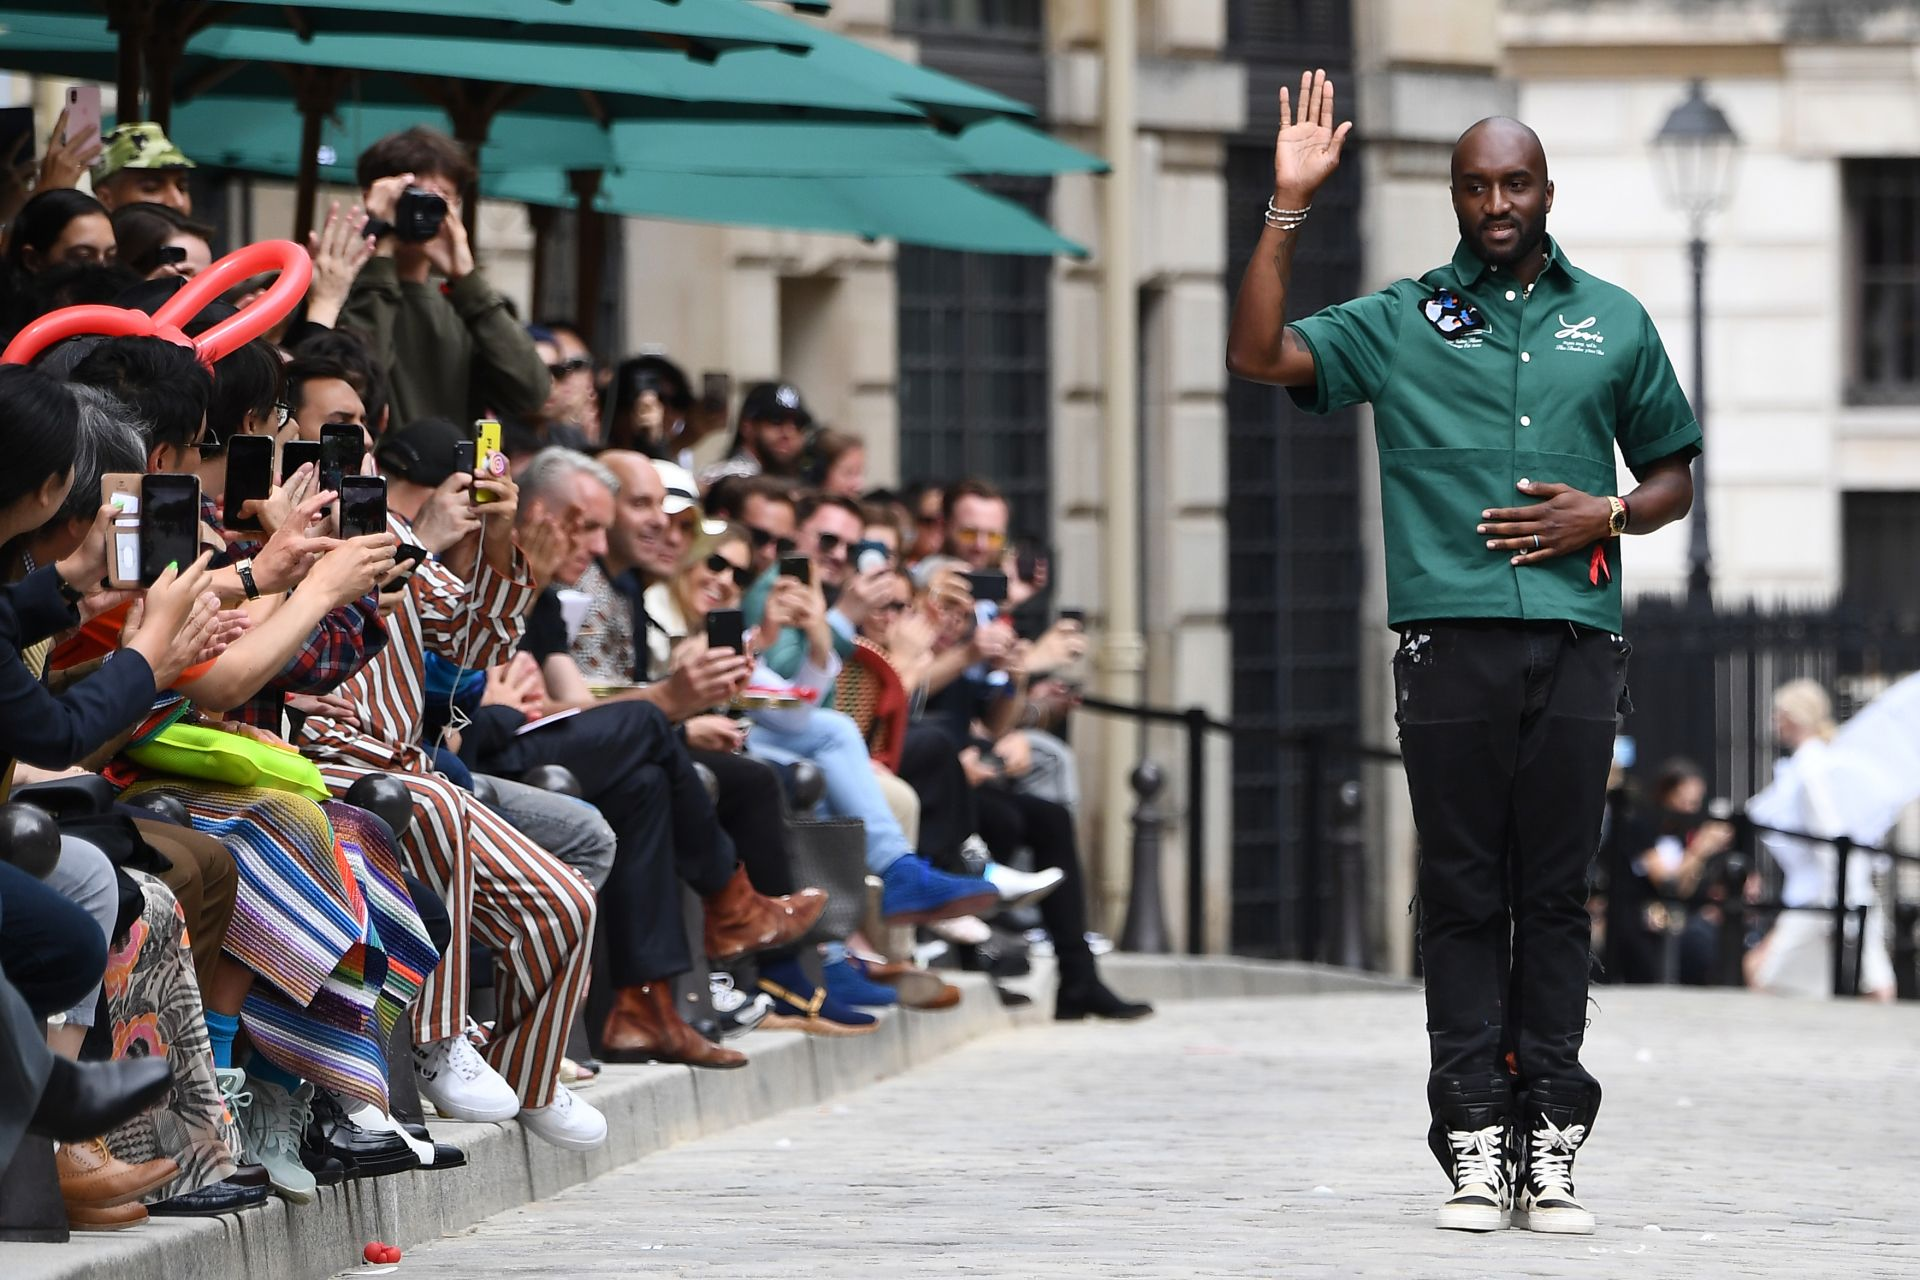 US fashion designer Virgil Abloh acknowledges the audience at the end of the presentation of Louis Vuitton's creation during the men's spring/summer 2020 fashion collection on June 20, 2019 in Paris. (Photo by Anne-Christine POUJOULAT / AFP)